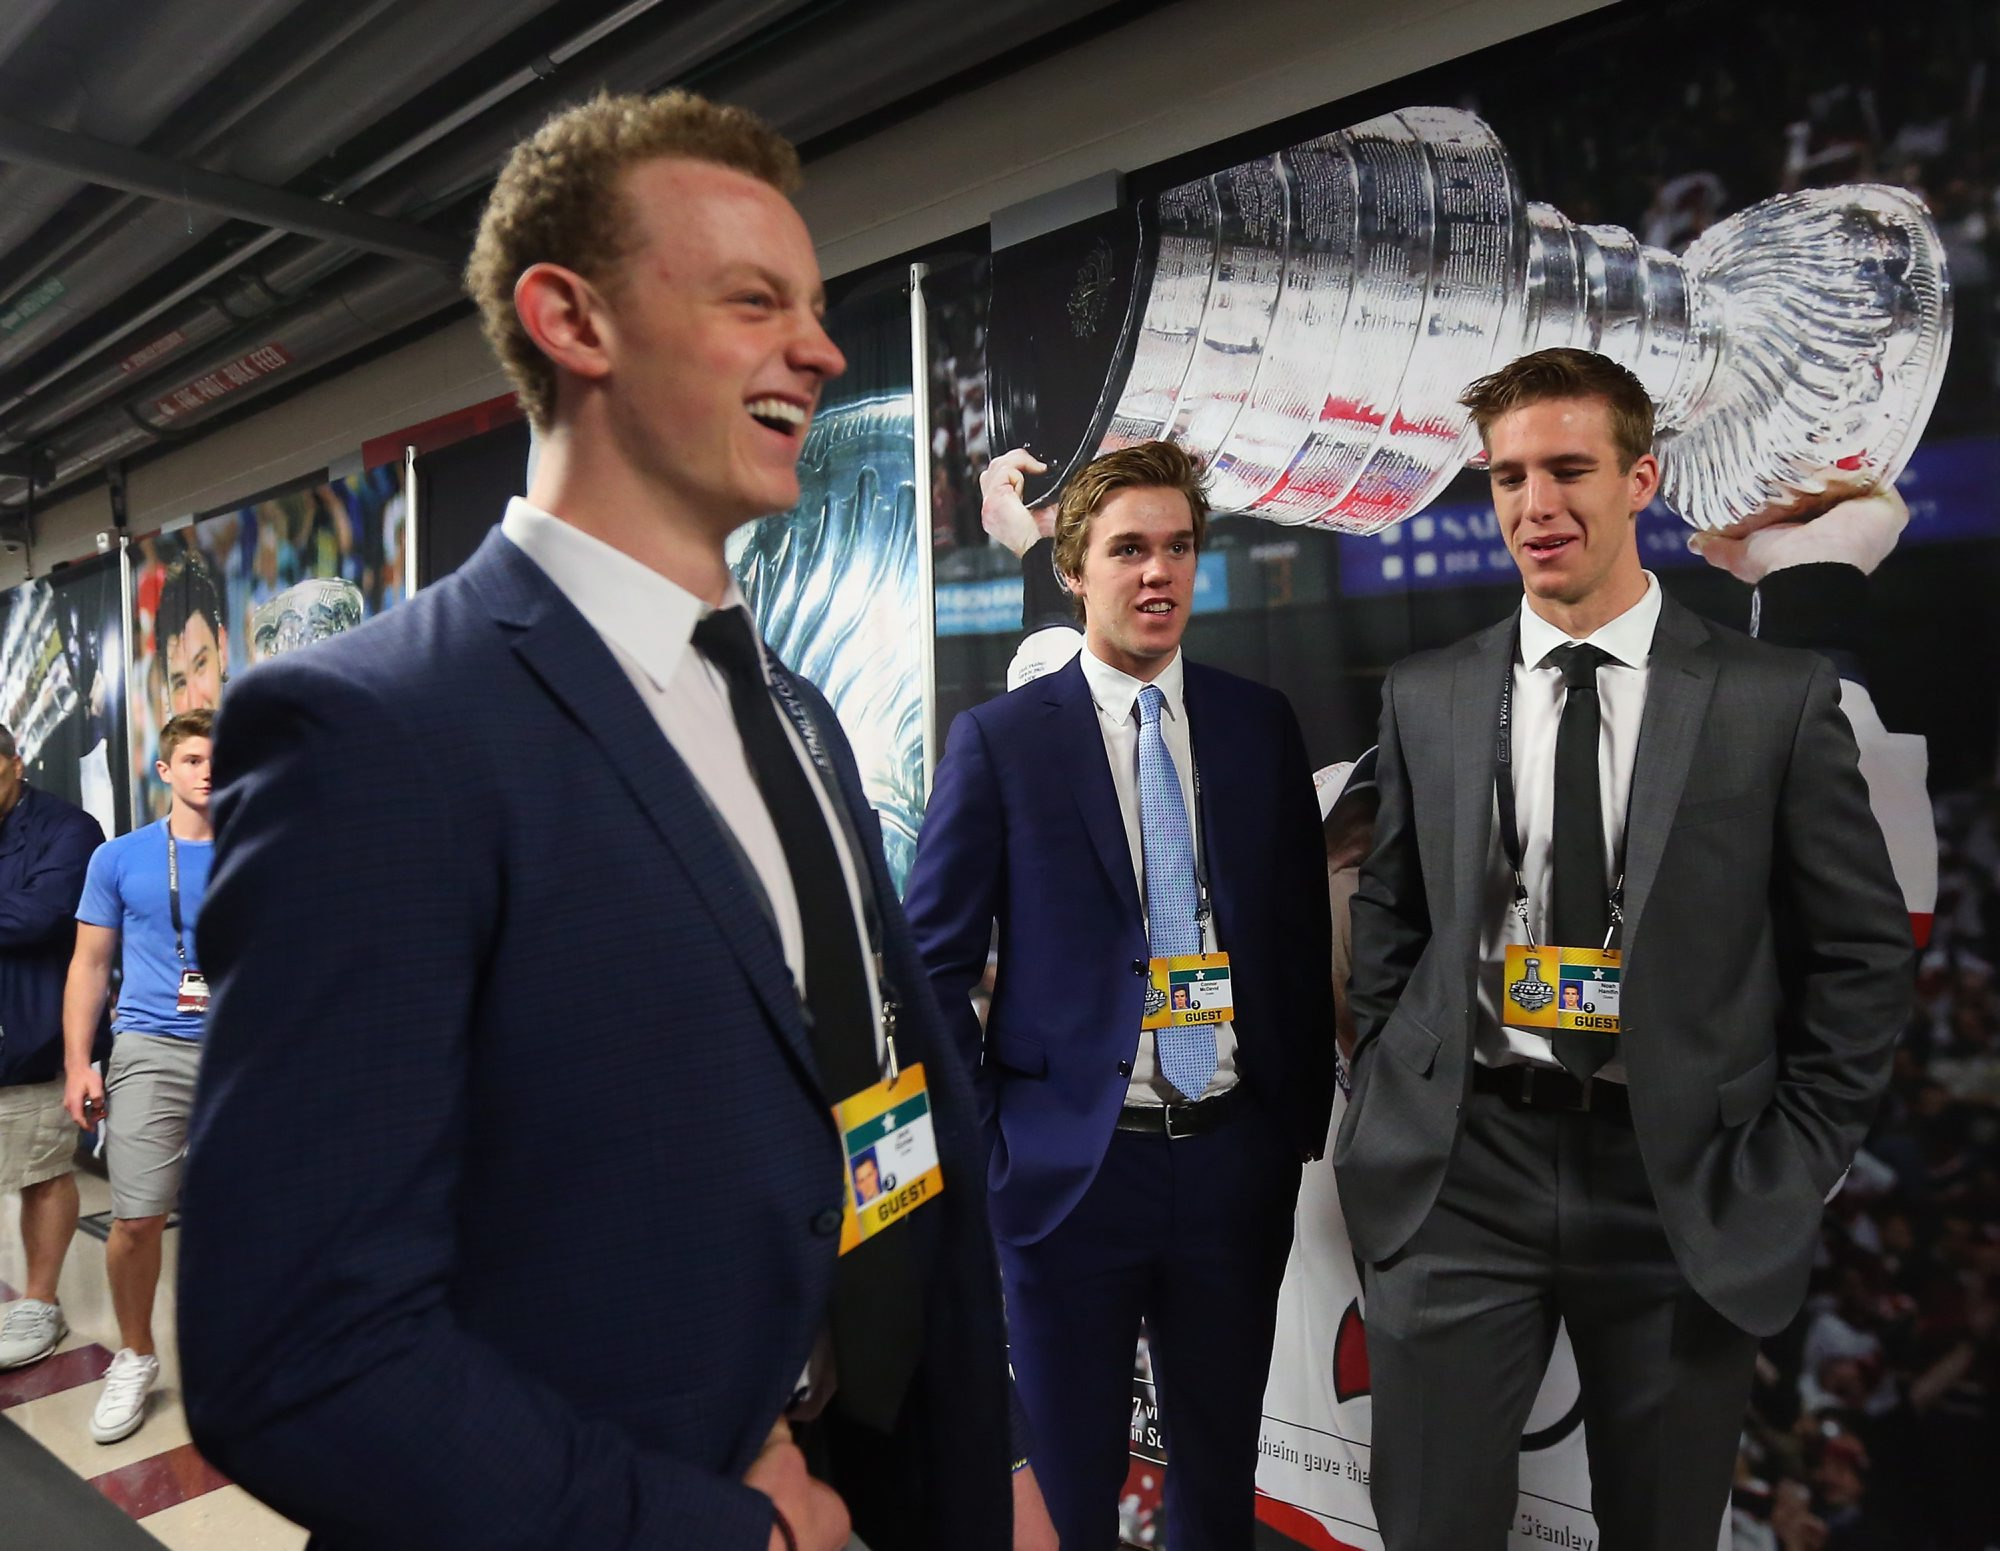 Jack Eichel, Connor McDavid and Noah Hanifin could become the first three selections in the NHL Draft. Hanifin, a Boston College defenseman, is the wild card. (Getty Images)